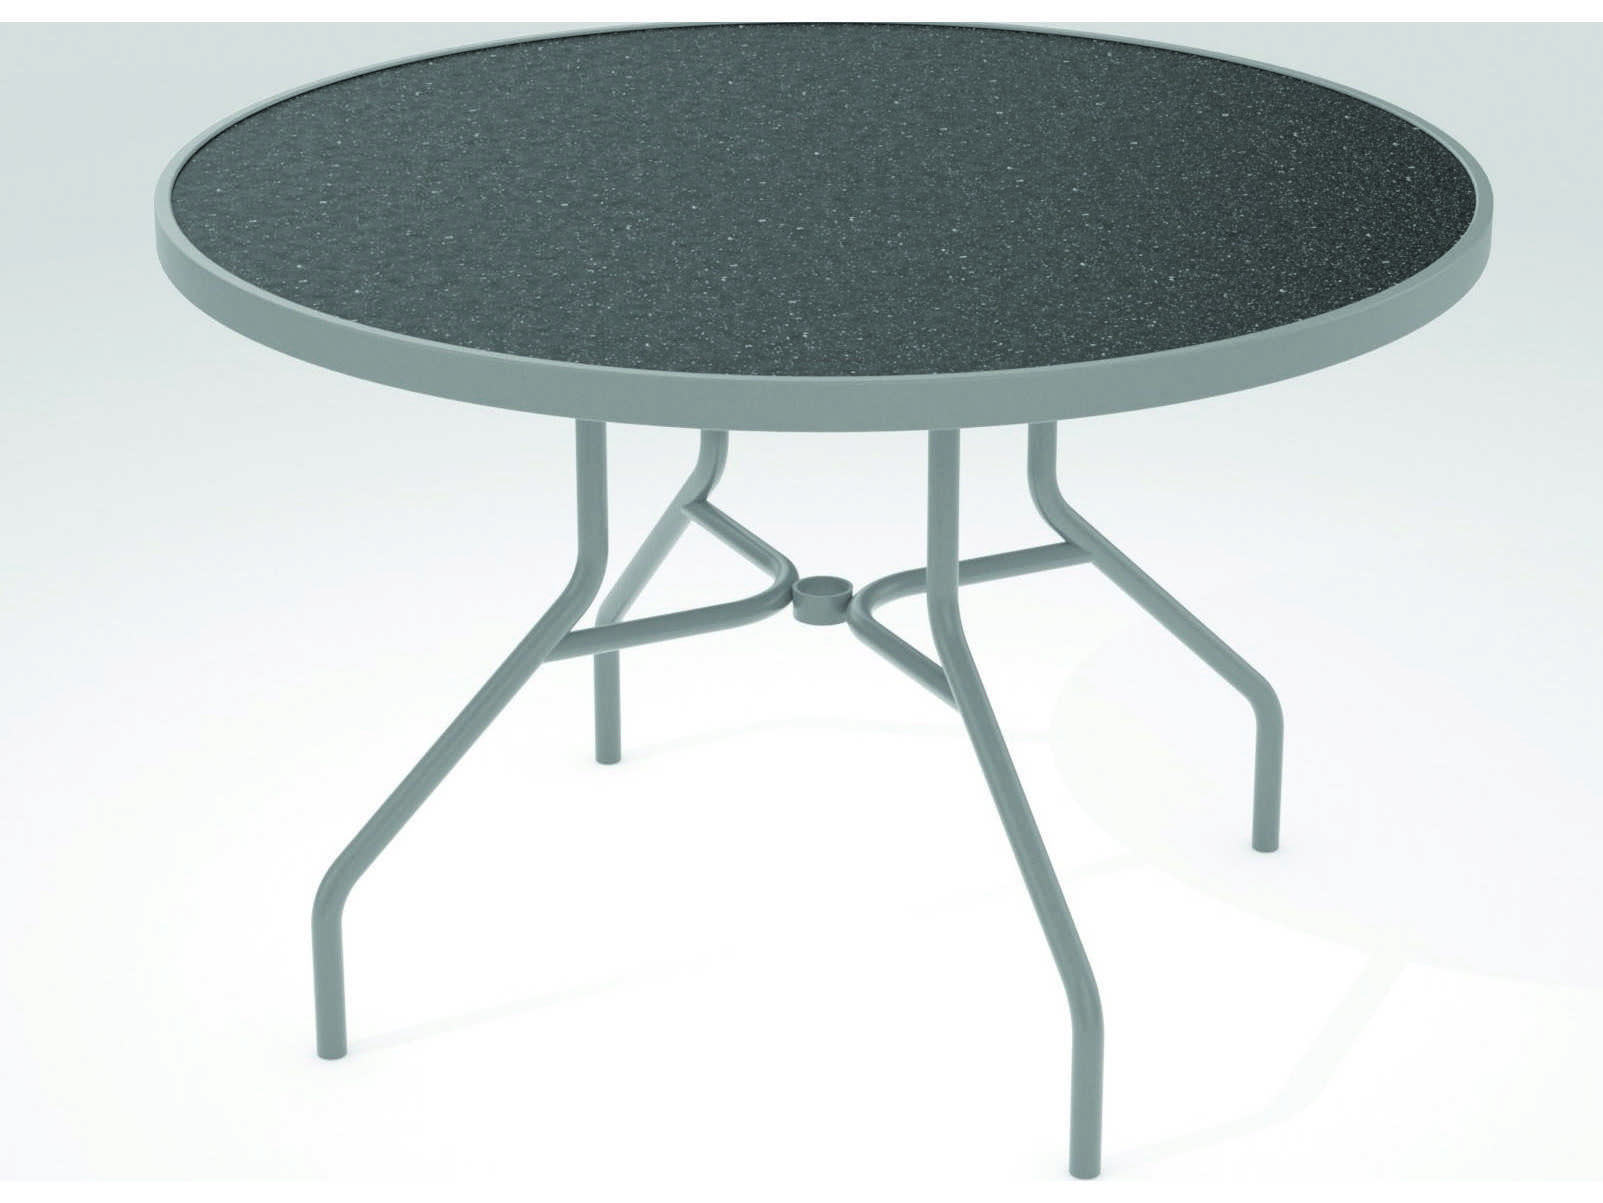 Tropitone Hpl Raduno Aluminum 42 Round Dining Table 646nh